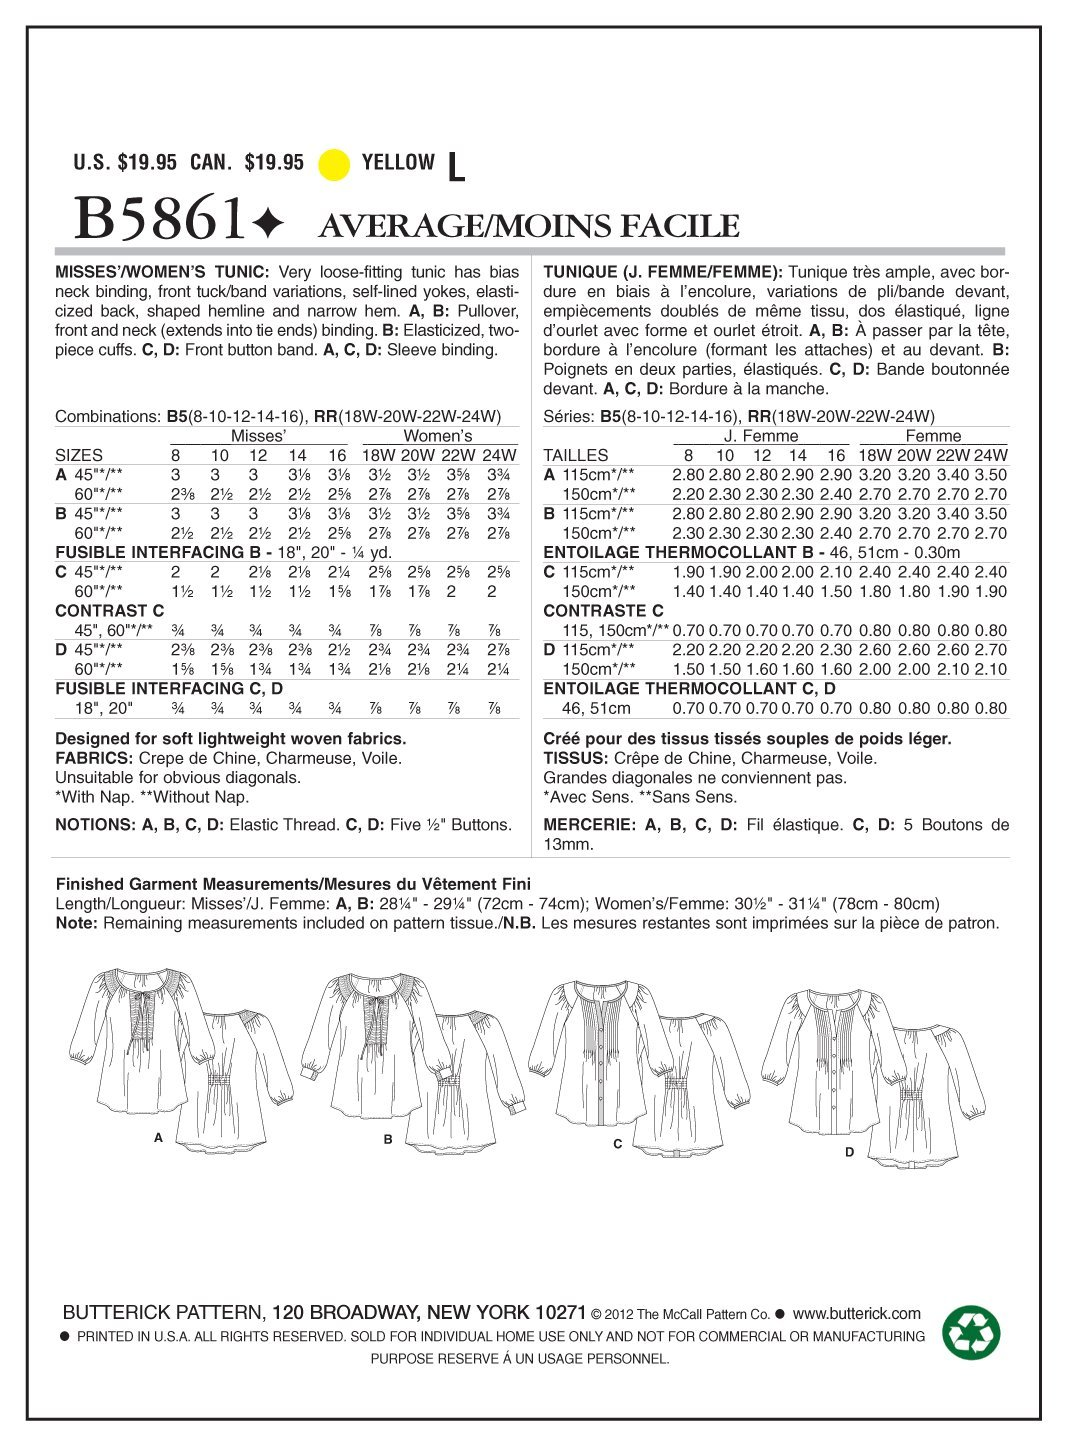 White Pack of 1 Butterick Patterns B5861 Size RR 18W-20W-22W-24W Misses// Womens Tunic